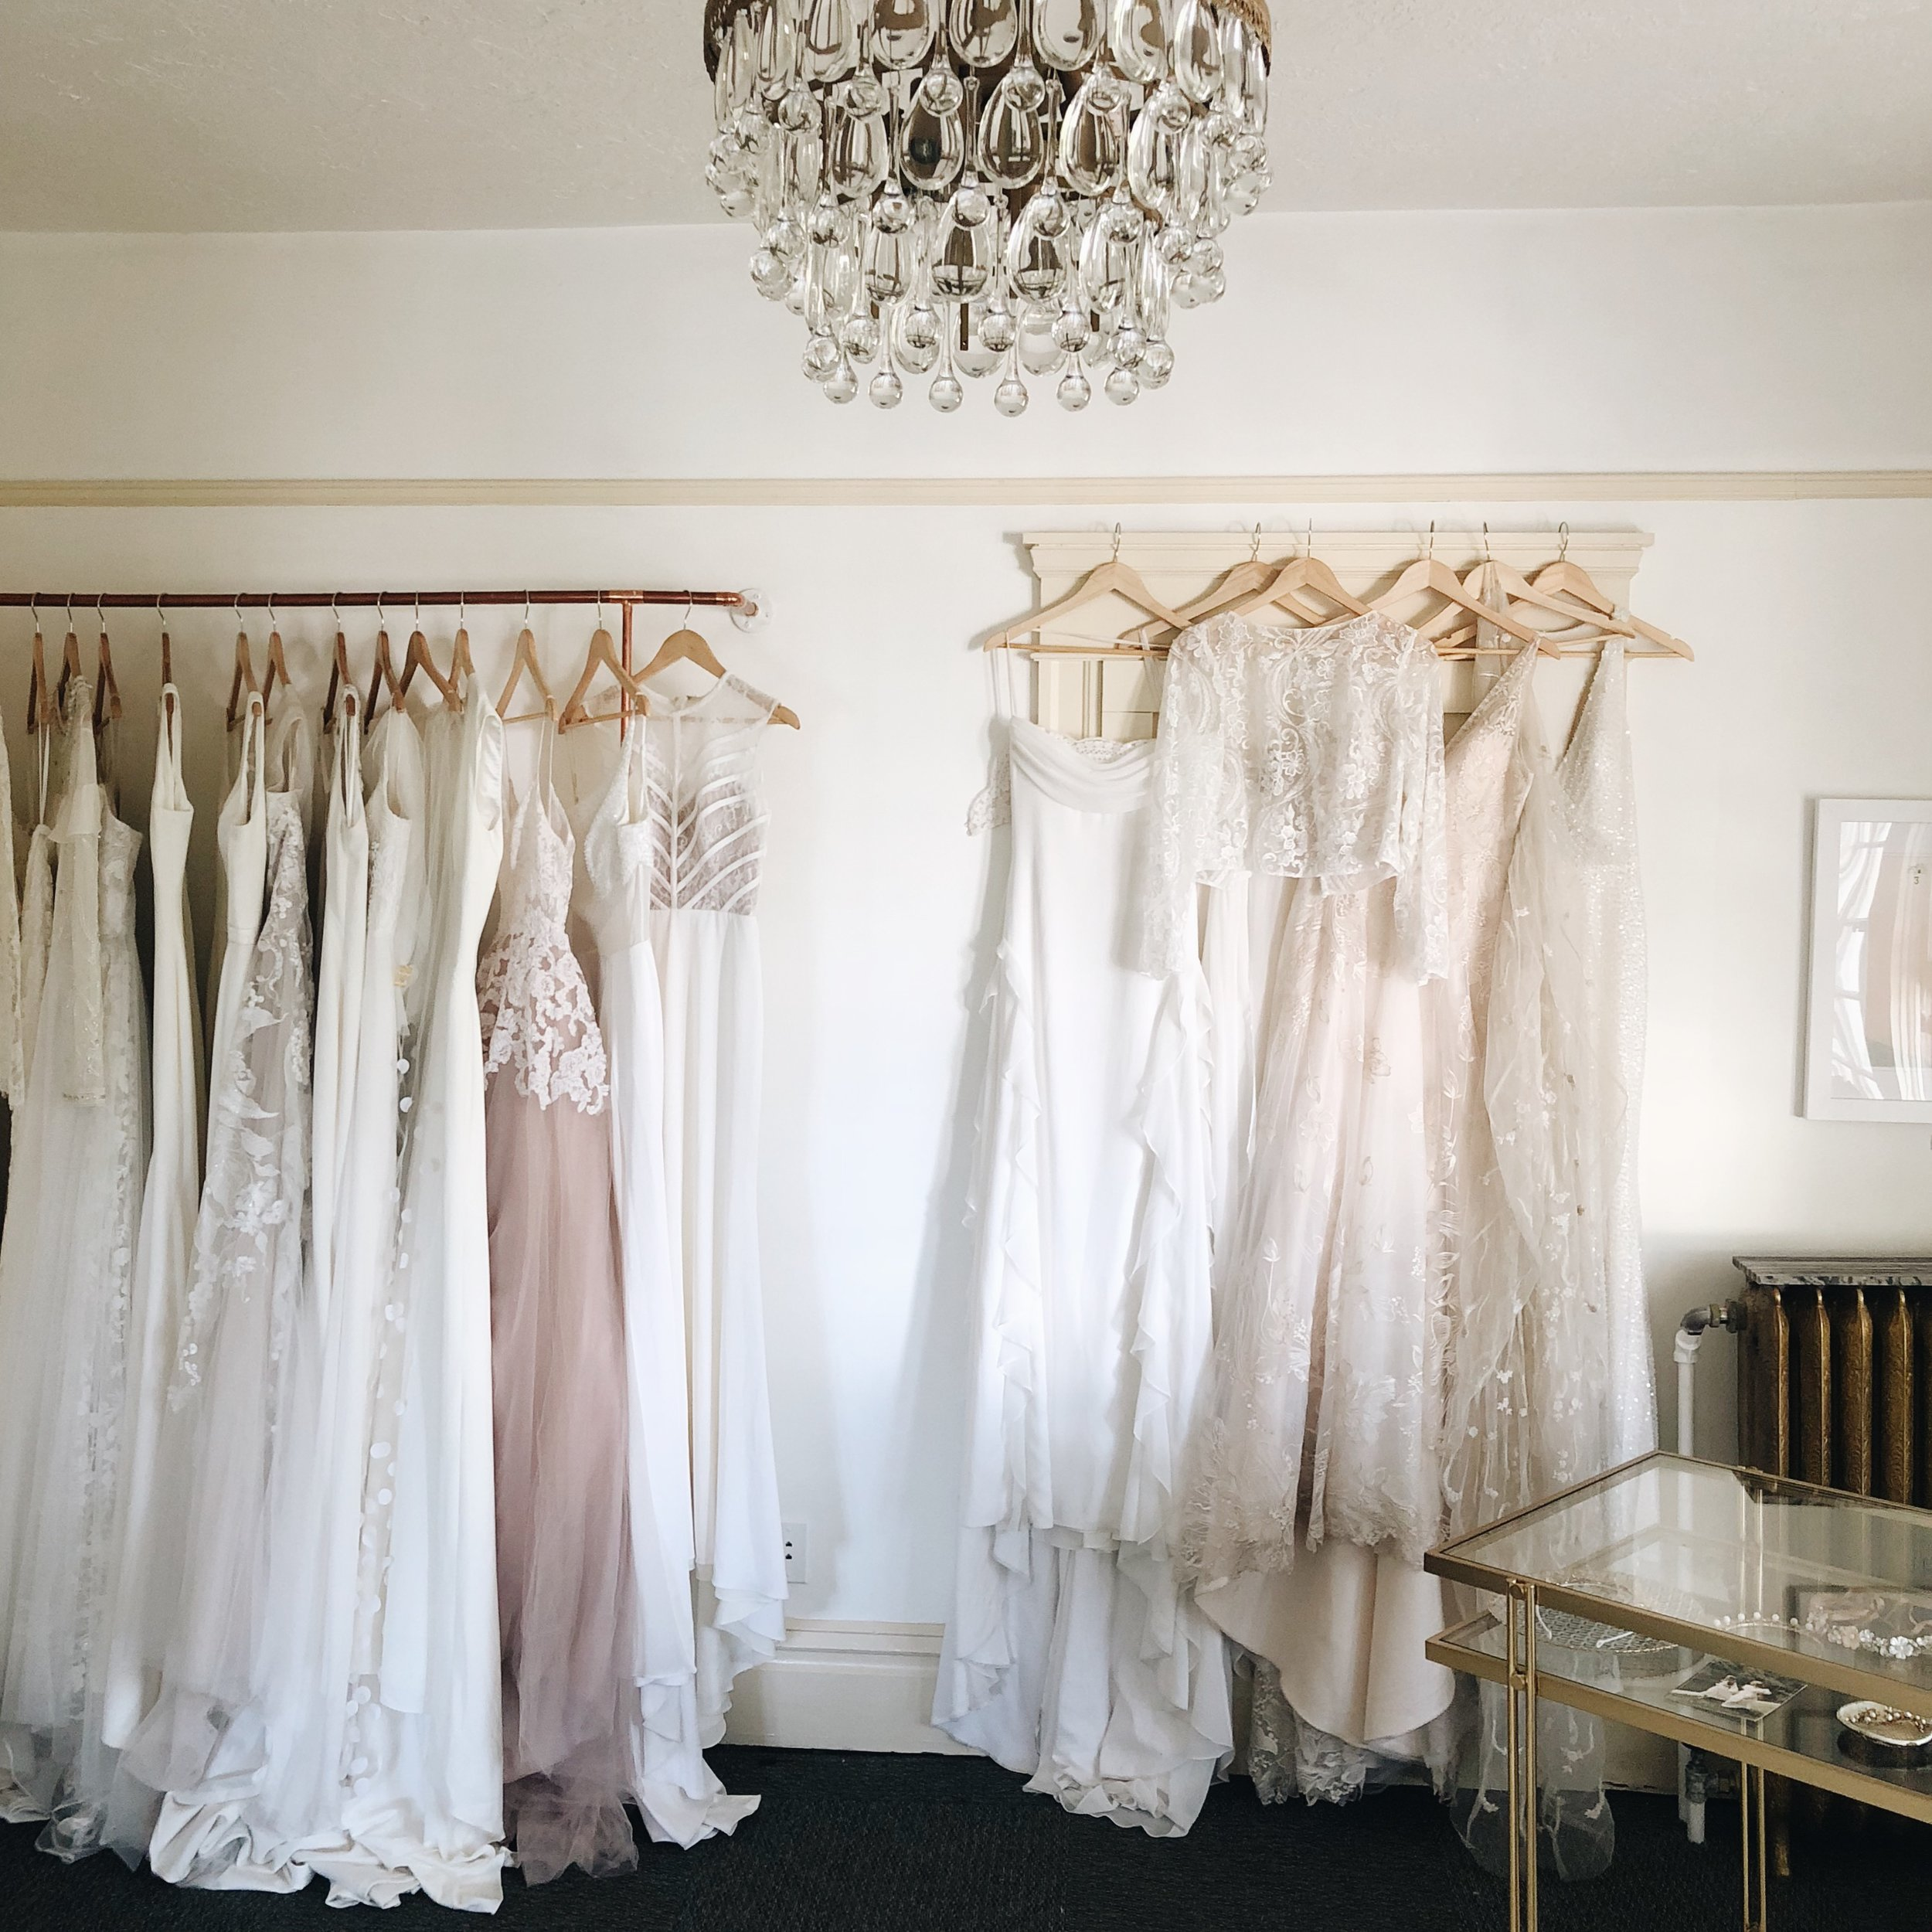 You'll Feel Comfortable and Calm - We've heard so many times already that brides are nervous to start wedding dress shopping or even coming to their fitting… but after a few minutes at Élsca Bride, they are feeling calm and so HAPPY. All the nervousness fades away. We at Élsca, genuinely care about your wedding and your visit with us, there's a good chance we're going to be friends after your fitting anyway… so don't be shy and come hang!